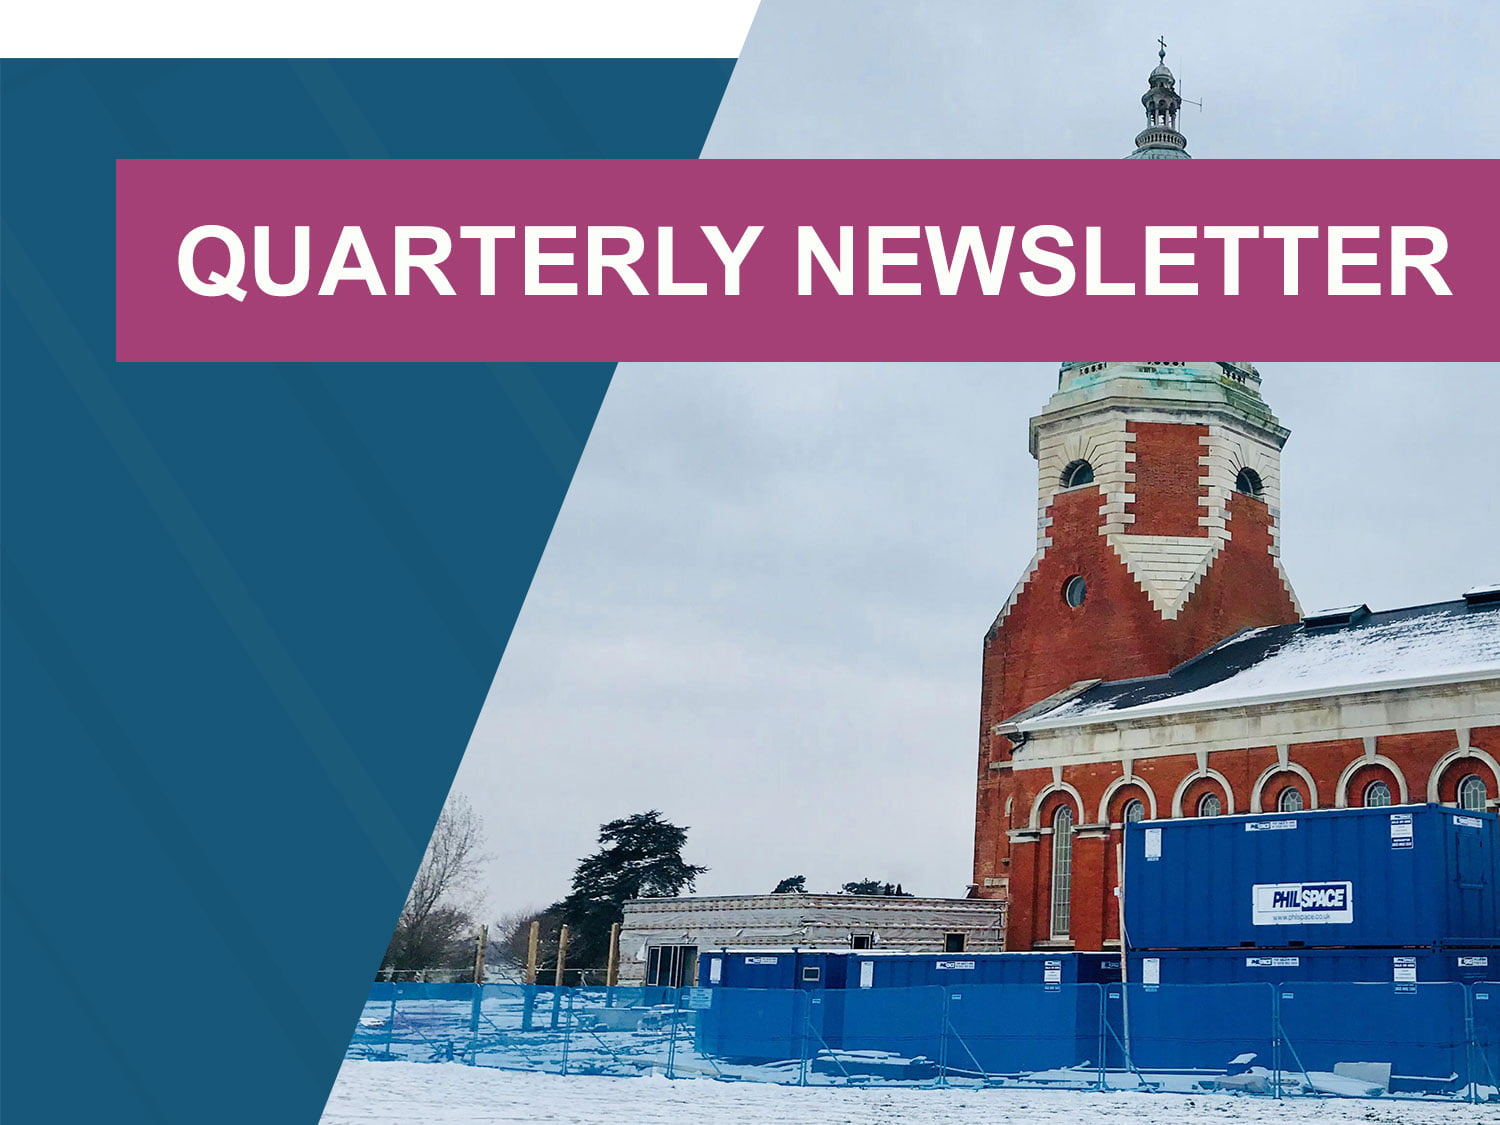 QUARTERLY NEWSLETTER – DECEMBER 2019